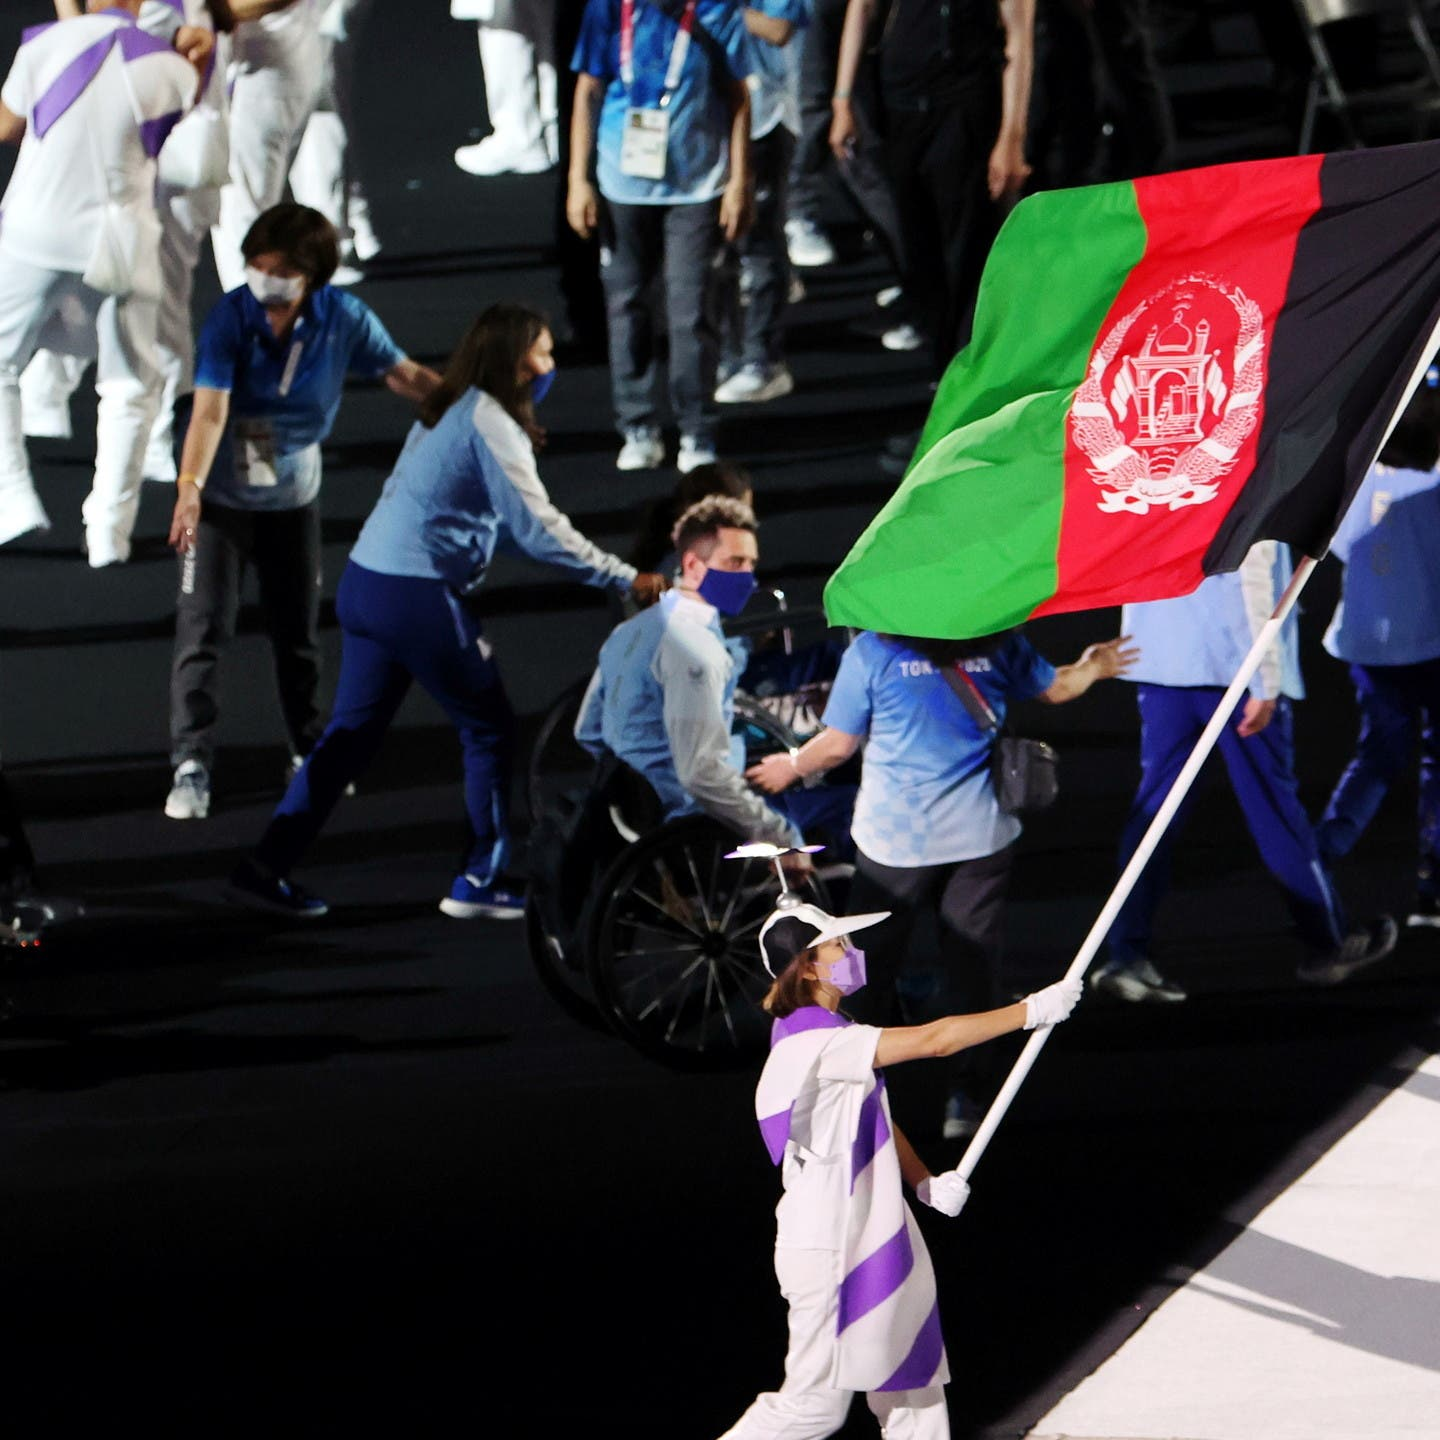 Afghanistan's 'Gen Z' fears for future and hard-won freedoms